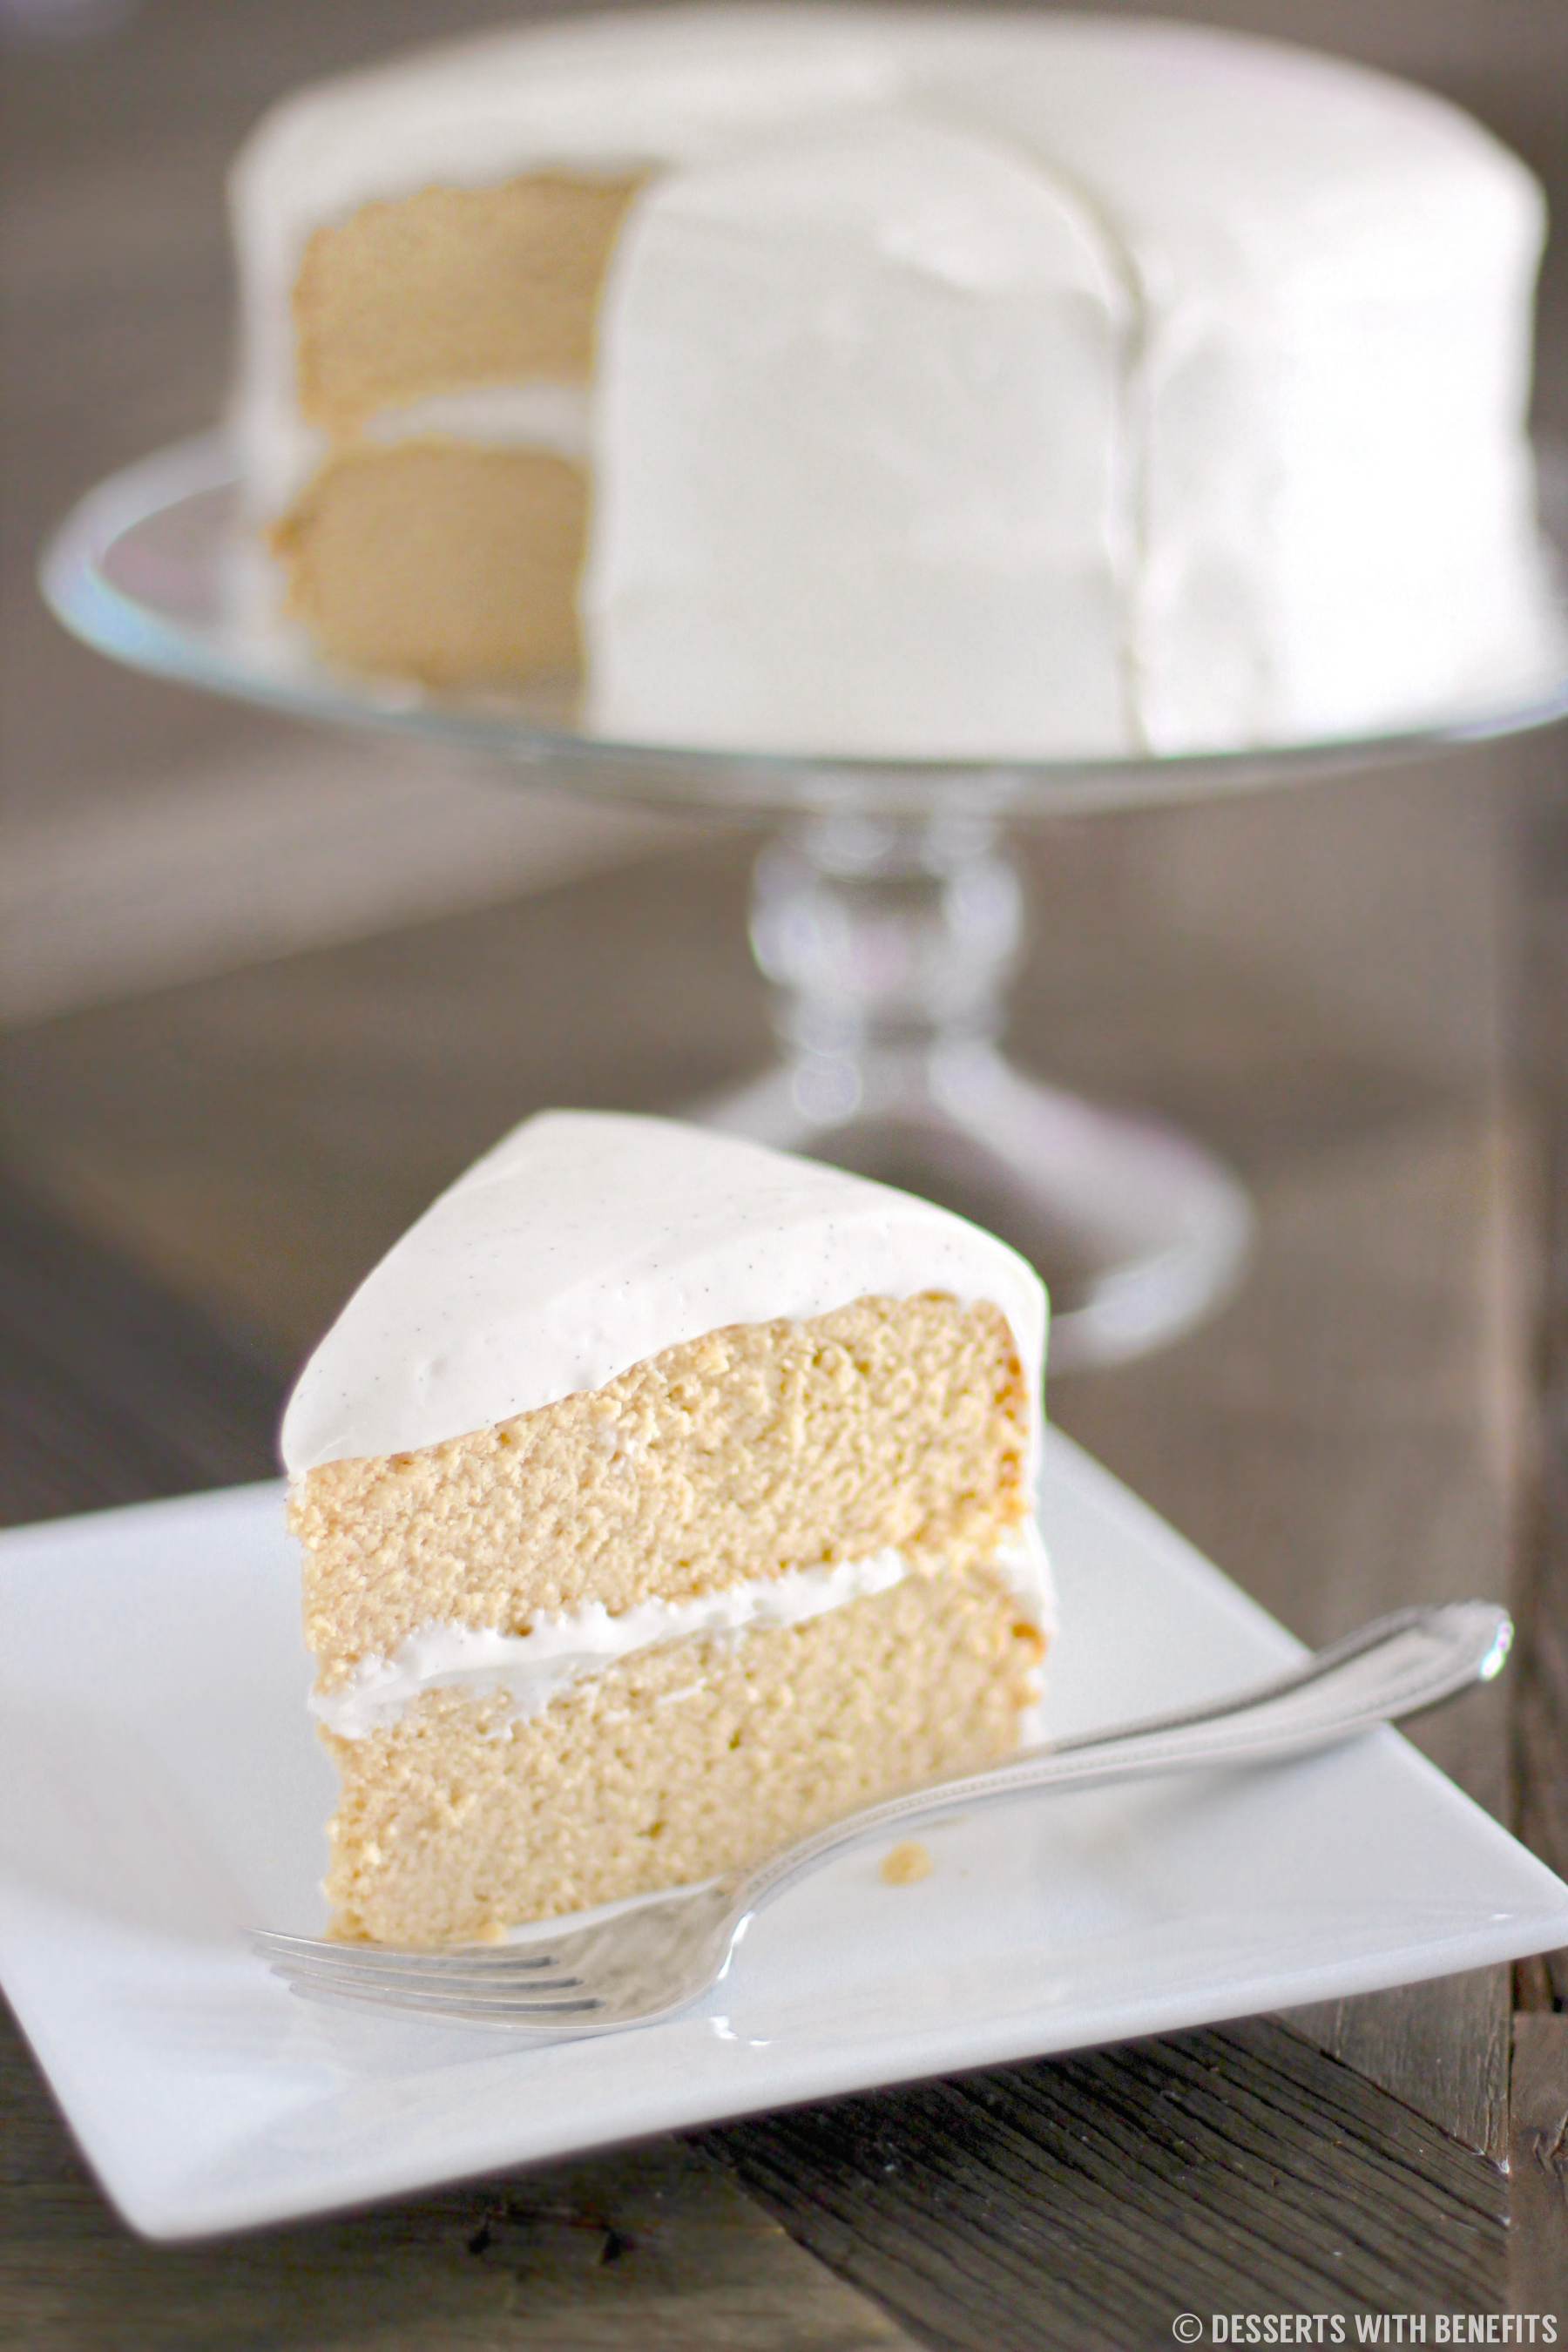 Jan 04,  · This lighter twist on traditional carrot cake features a tender cake packed with grated carrot, juicy pineapple, flaked coconut, and chopped pecans. Cream cheese frosting and a garnish of grated carrot top the cake.